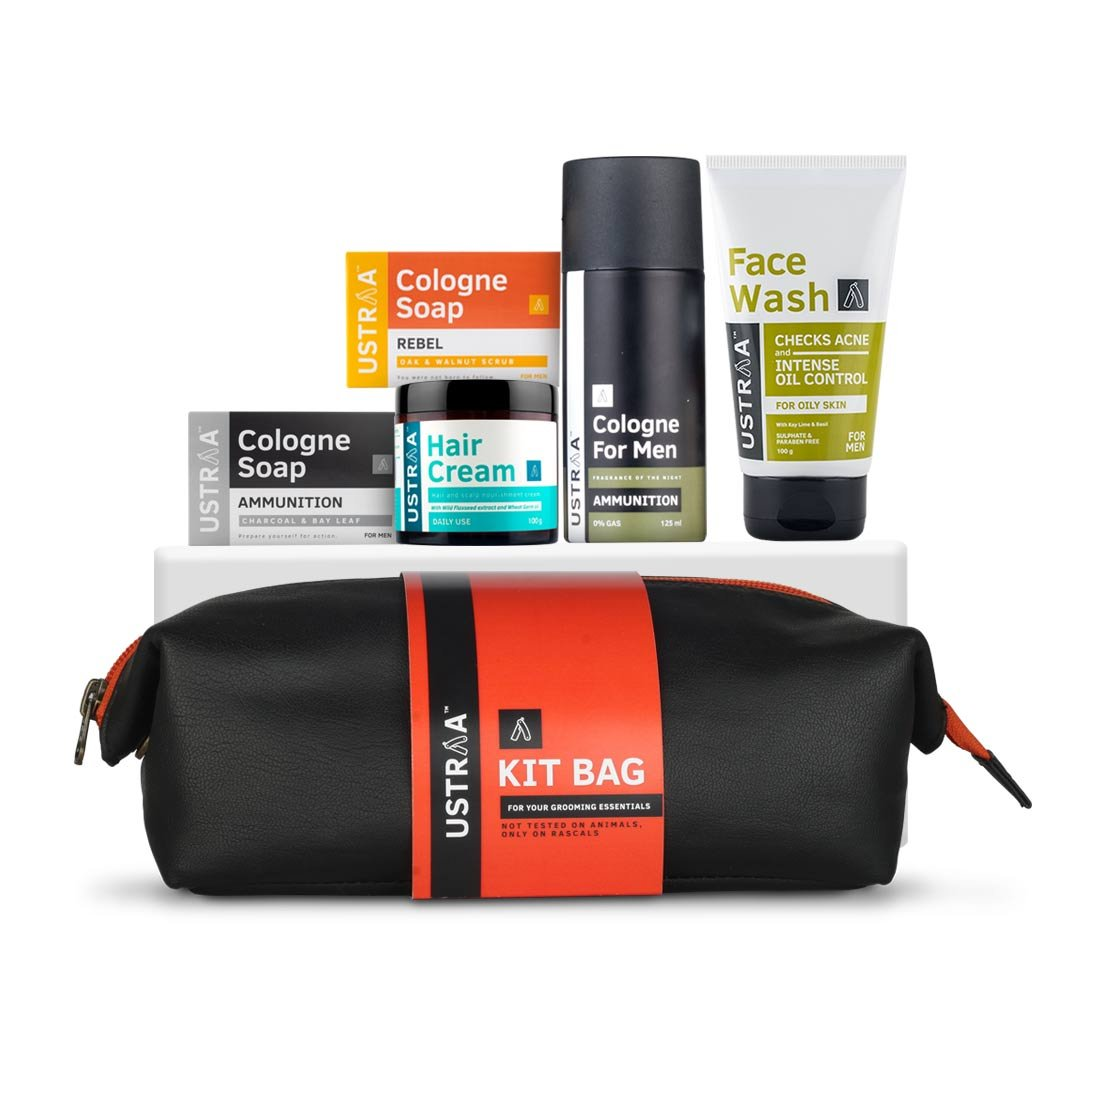 Ustraa Grooming Kit with free Travel Bag- Ammunition Cologne Soap & Rebel Cologne Soap (125 gm), Hair Cream (100 gm), Ammunition Cologne Spray (125 ml) and Face Wash Oily Skin (100 gm)